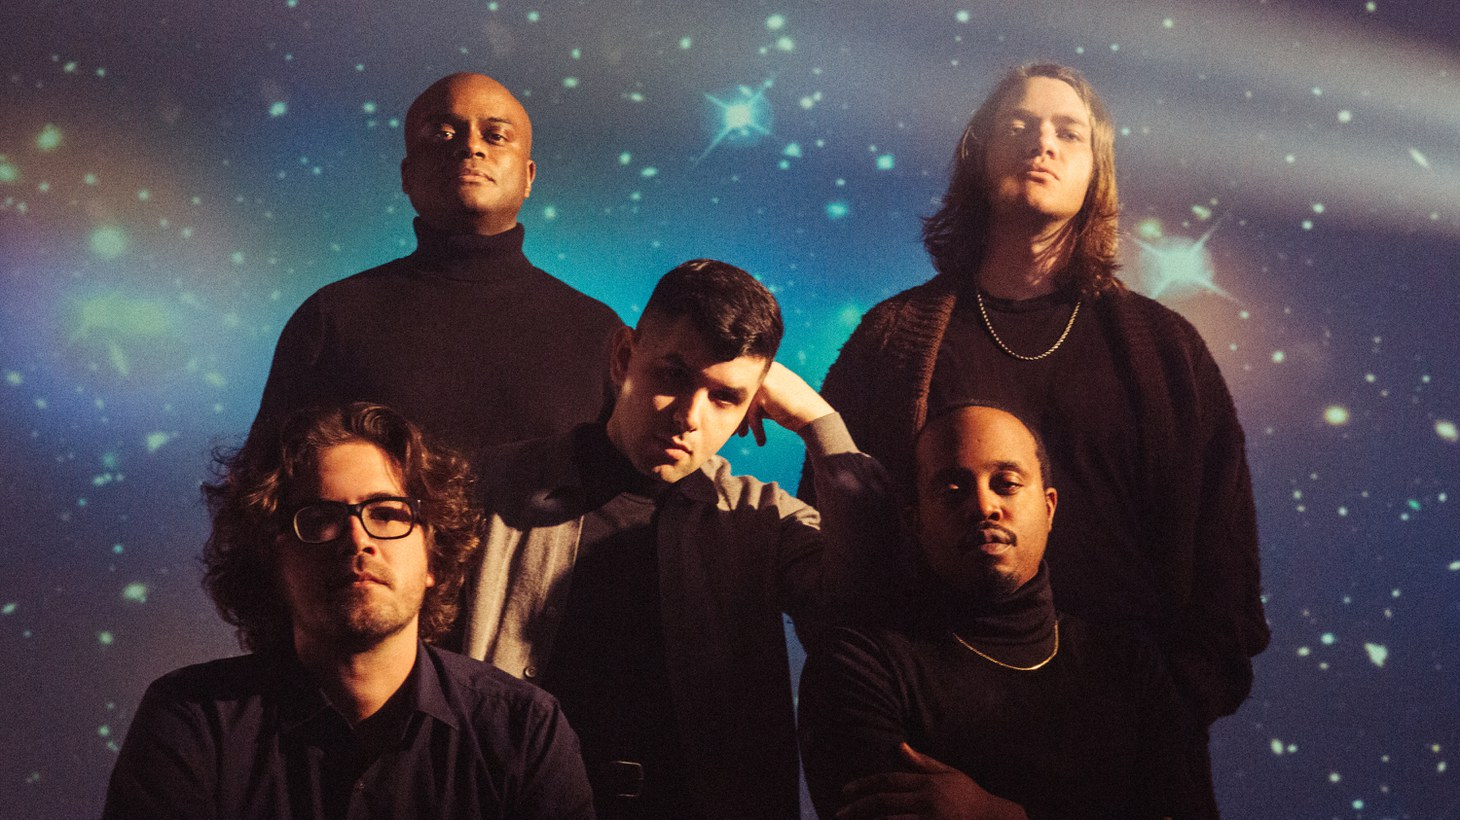 """Catch the unstoppable Durand Jones & The Indications as they unlock a wide range of new sounds on their new album """"Private Space,"""" anchored by the lush vocals of Aaron Frazer on """"Sea Of Love."""""""